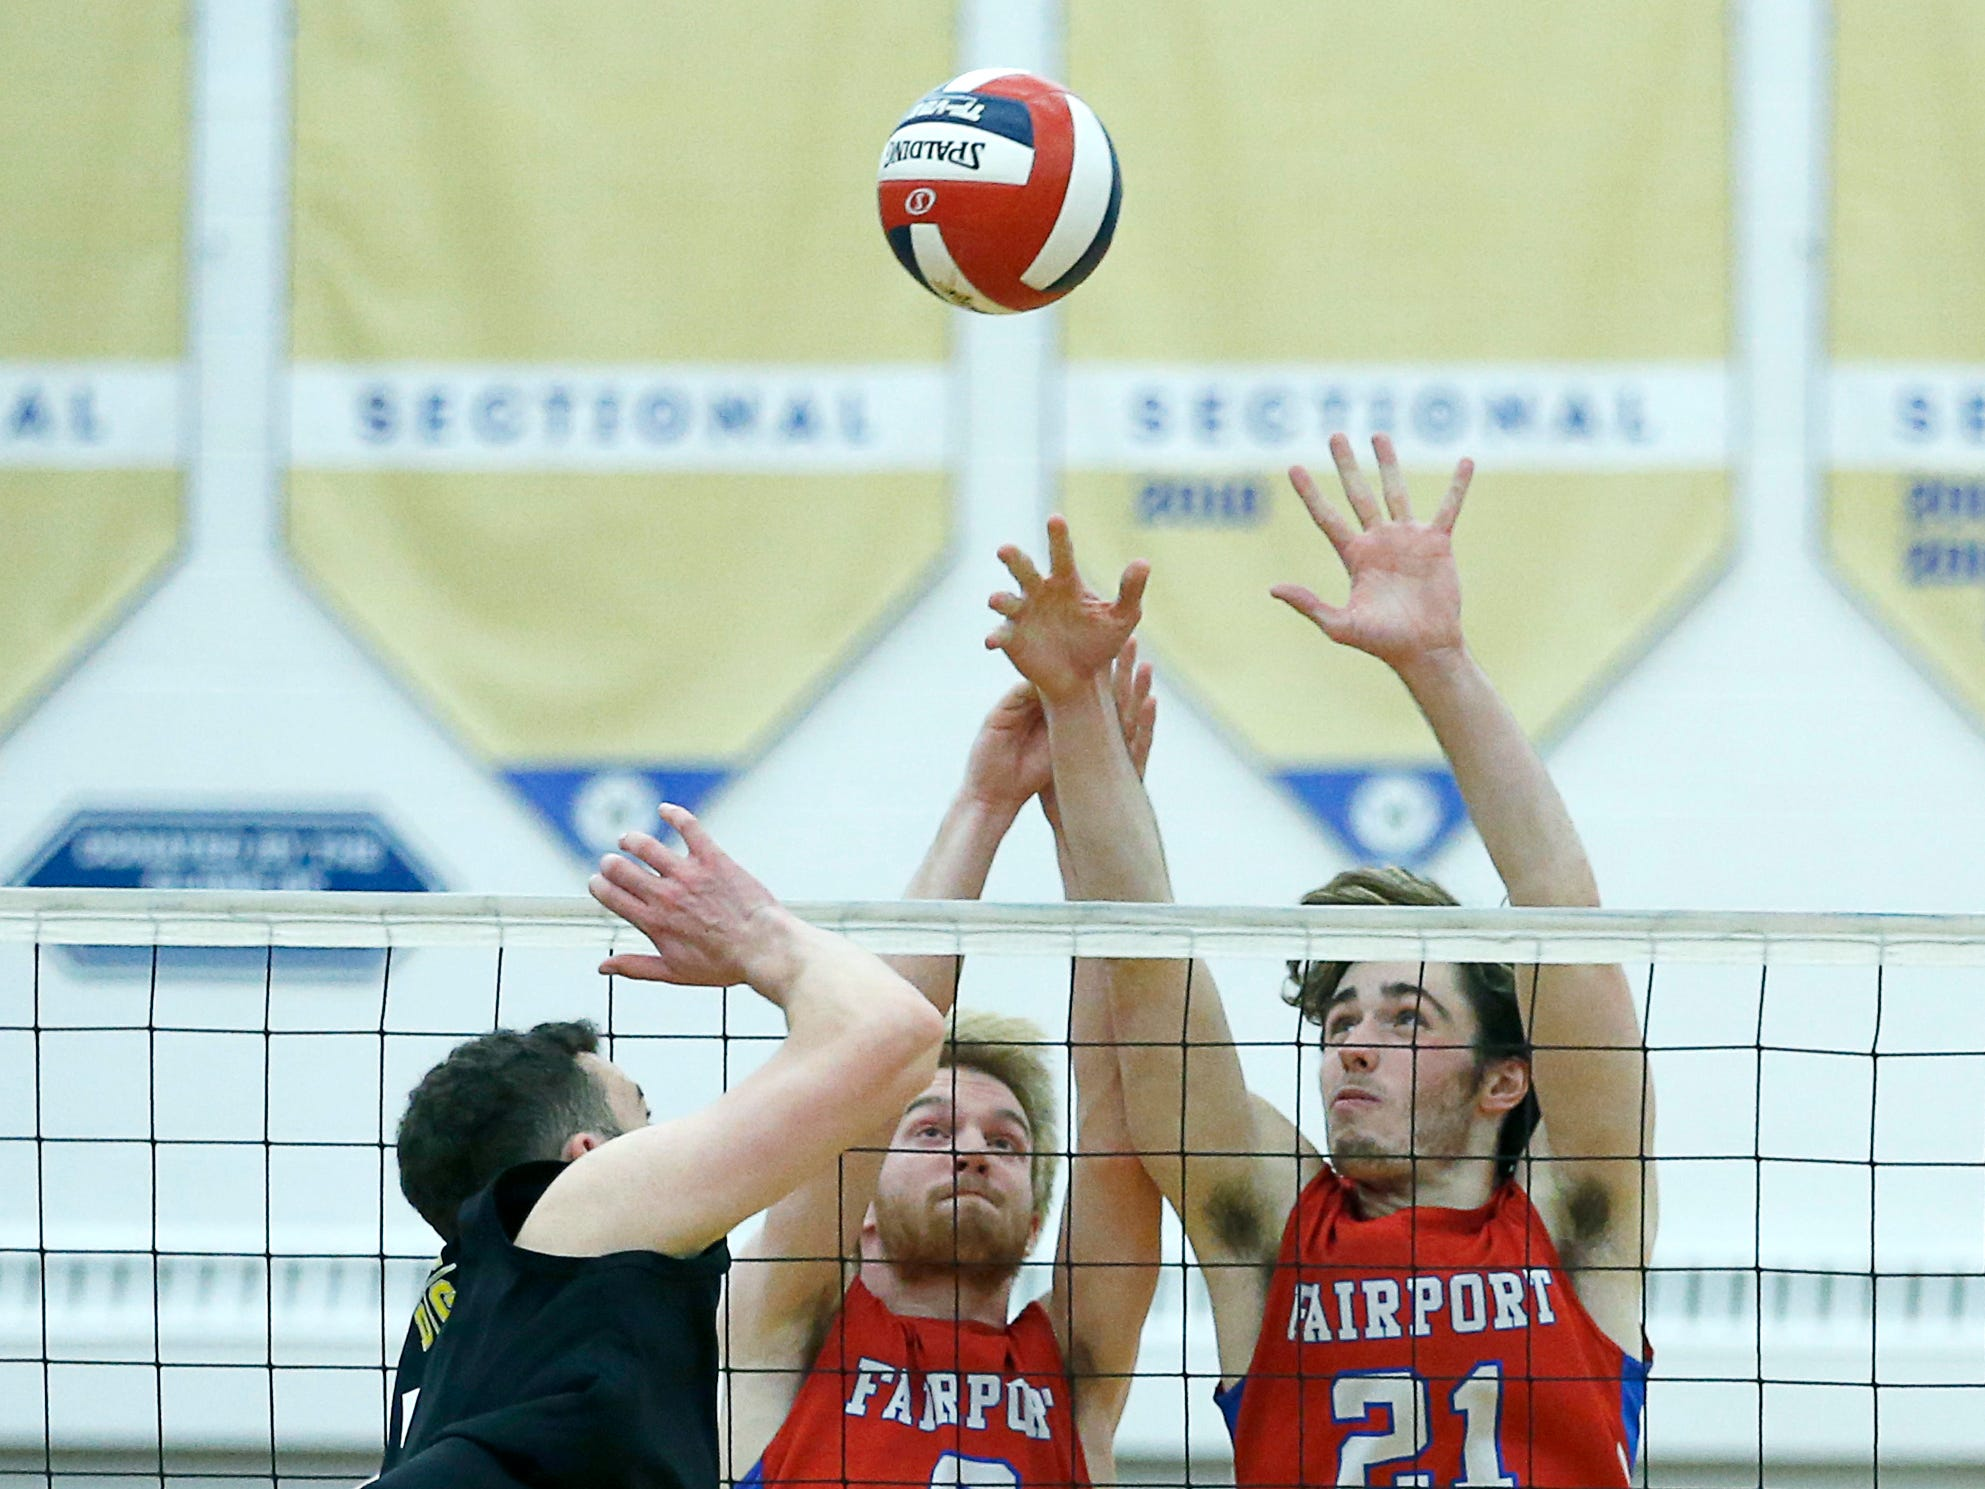 Class A volleyball final: Fairport's Kade Carlson and Matt Beiter defend against McQuaid's Brady Darby in the third set at Webster Schroeder High School.